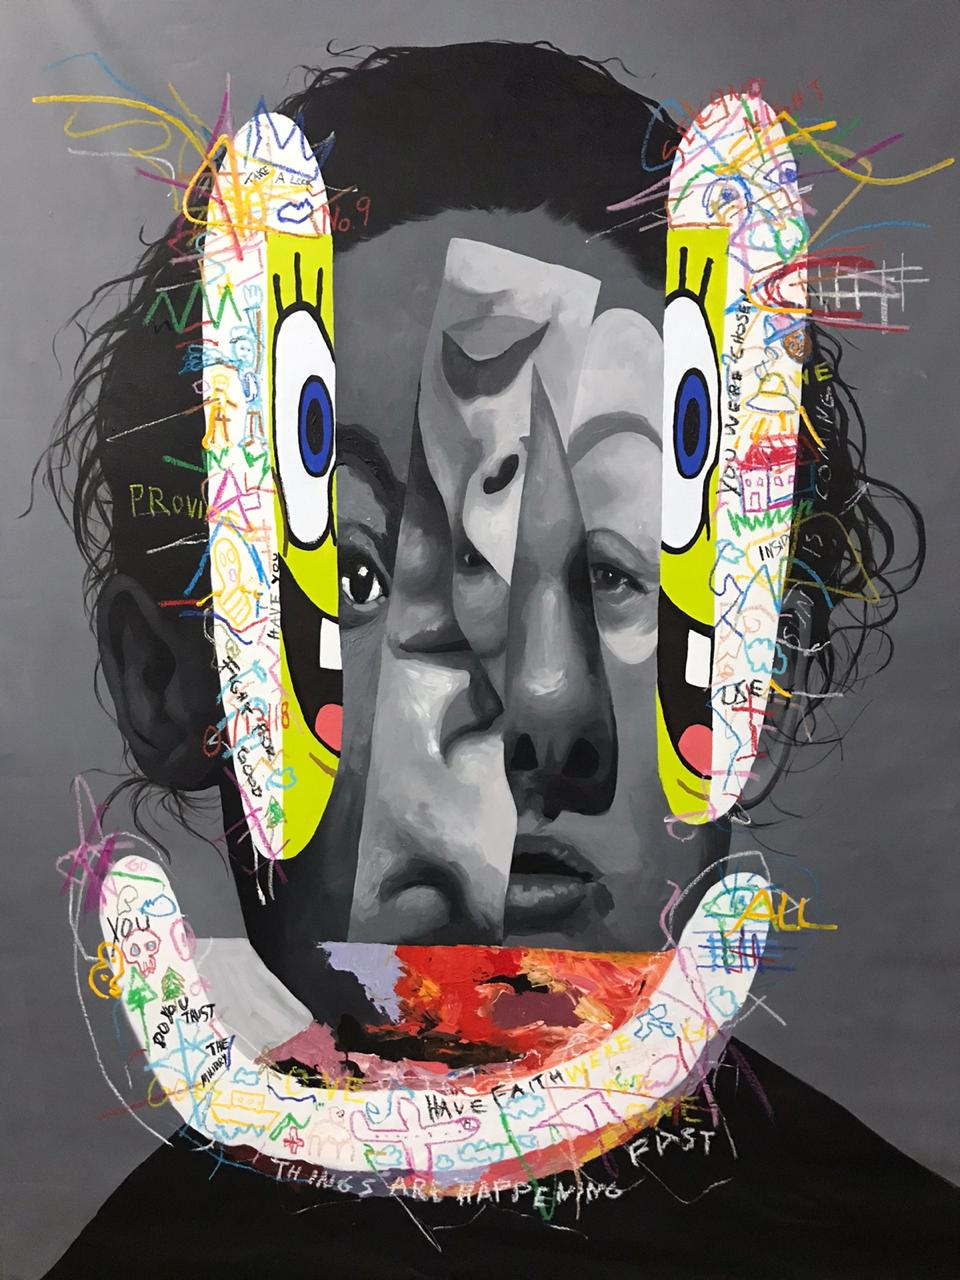 Things Are Happening by John Paul Fauves